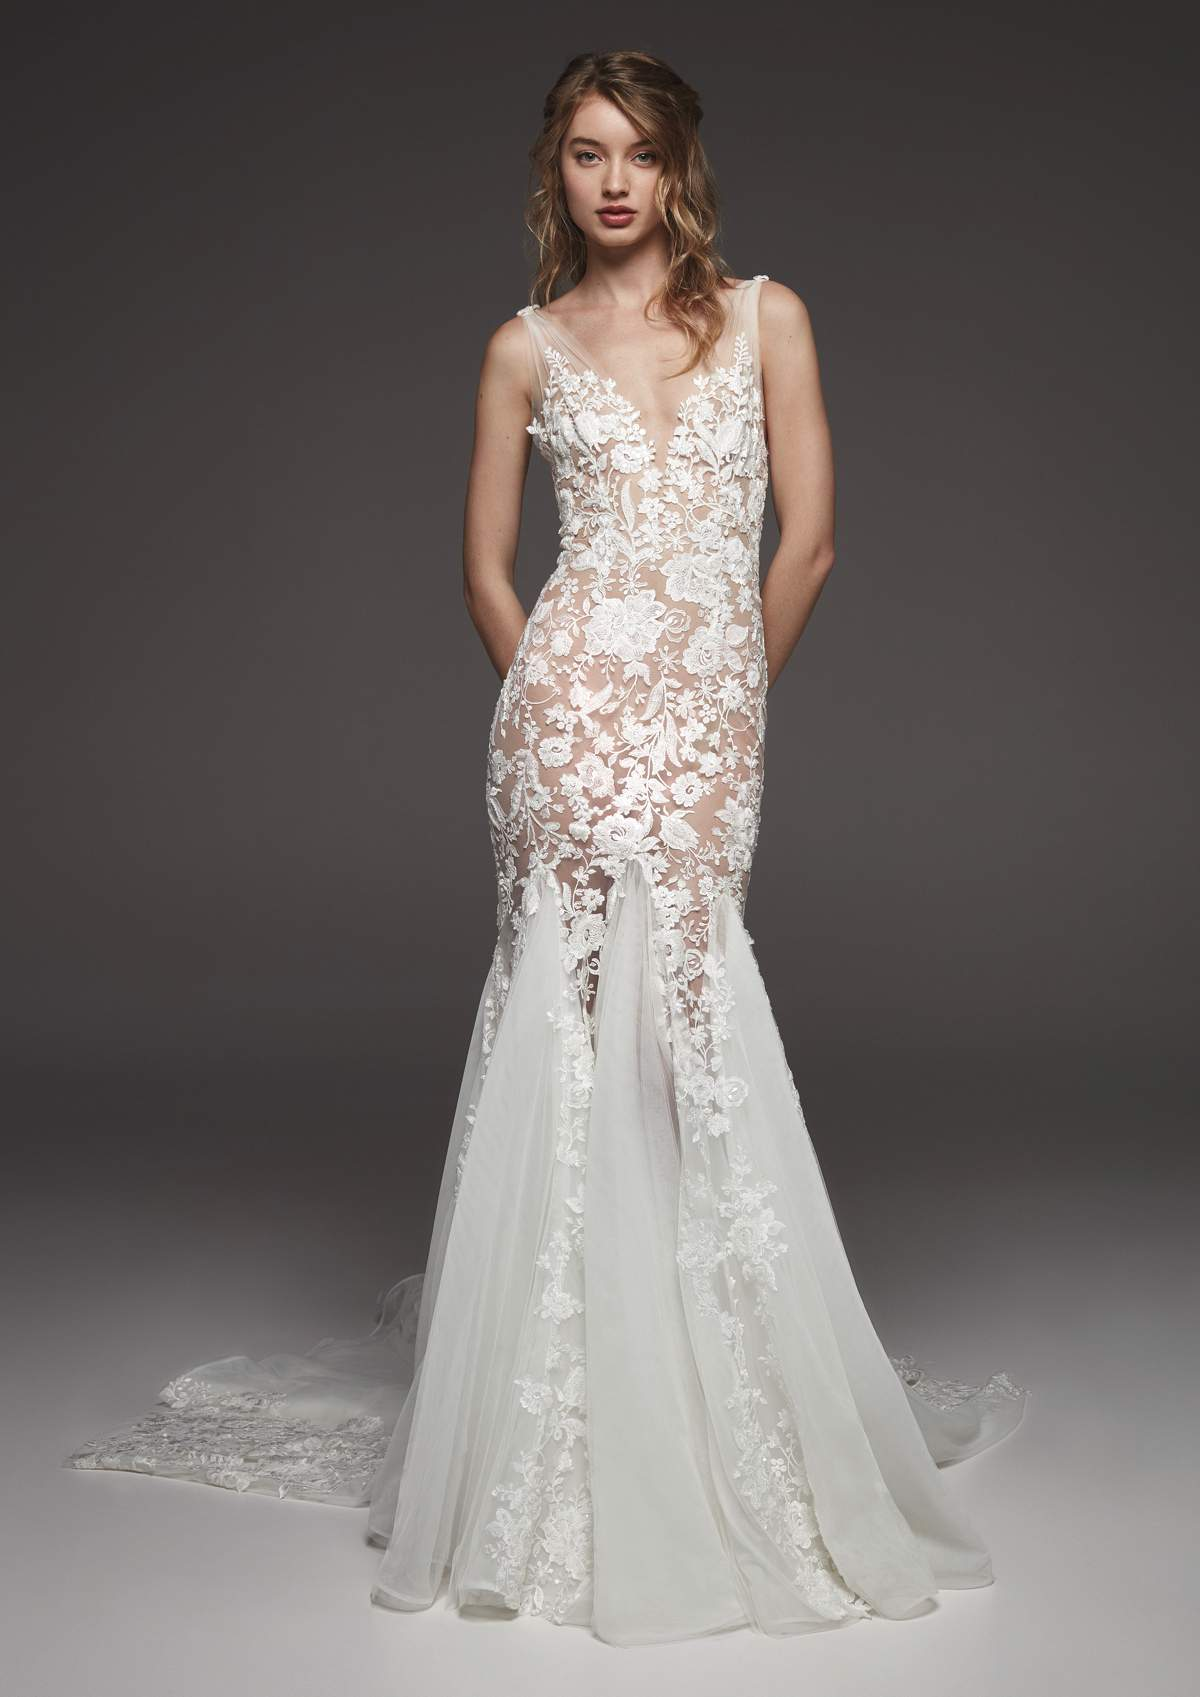 The 2019 collections from Pronovias - Love Our Wedding